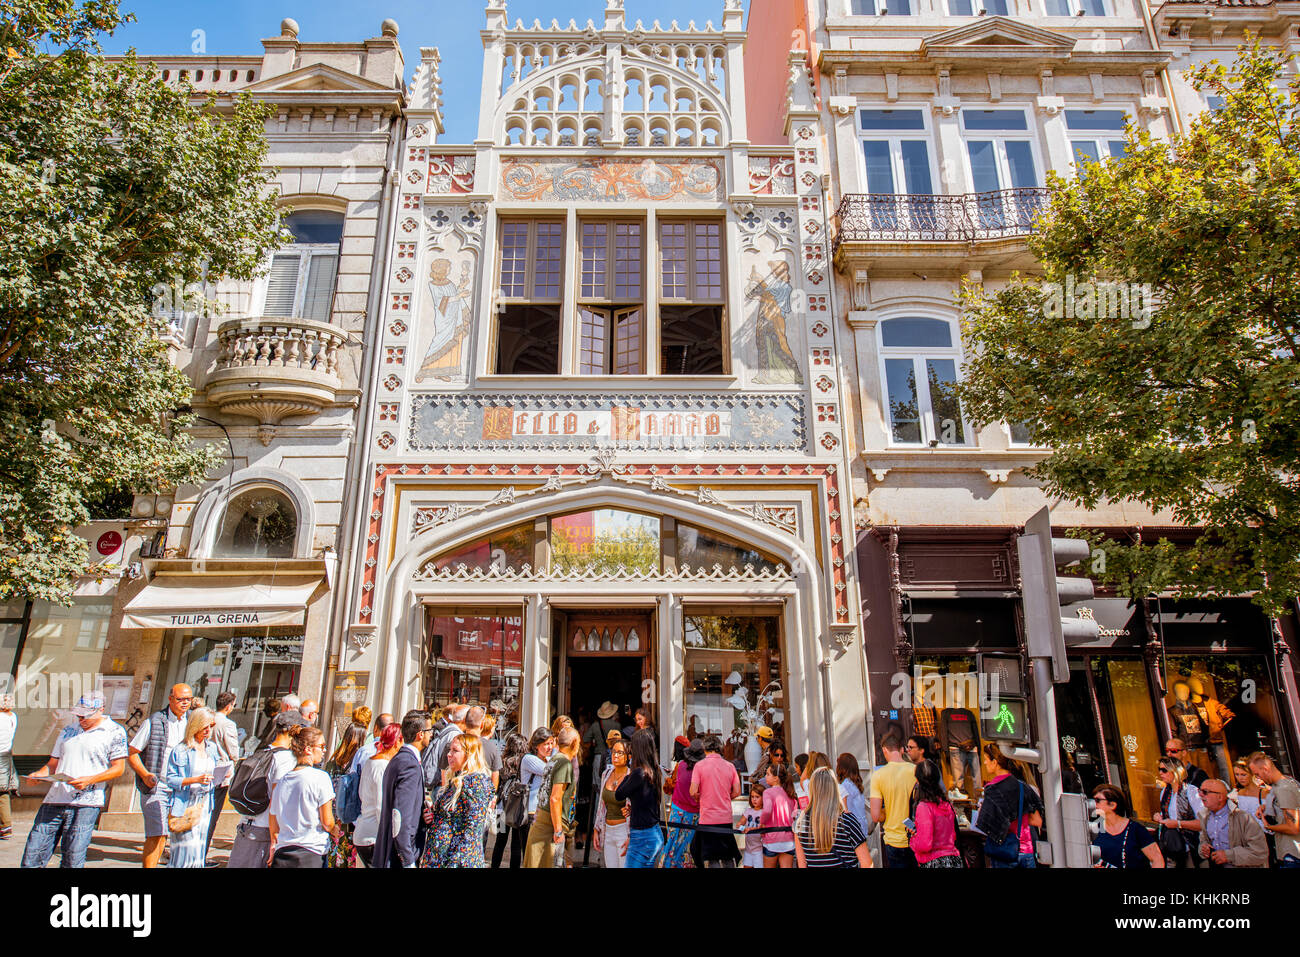 PORTO, PORTUGAL - September 24, 2017: View on the Lello Bookstore facade with tourists waiting for the entrance. - Stock Image